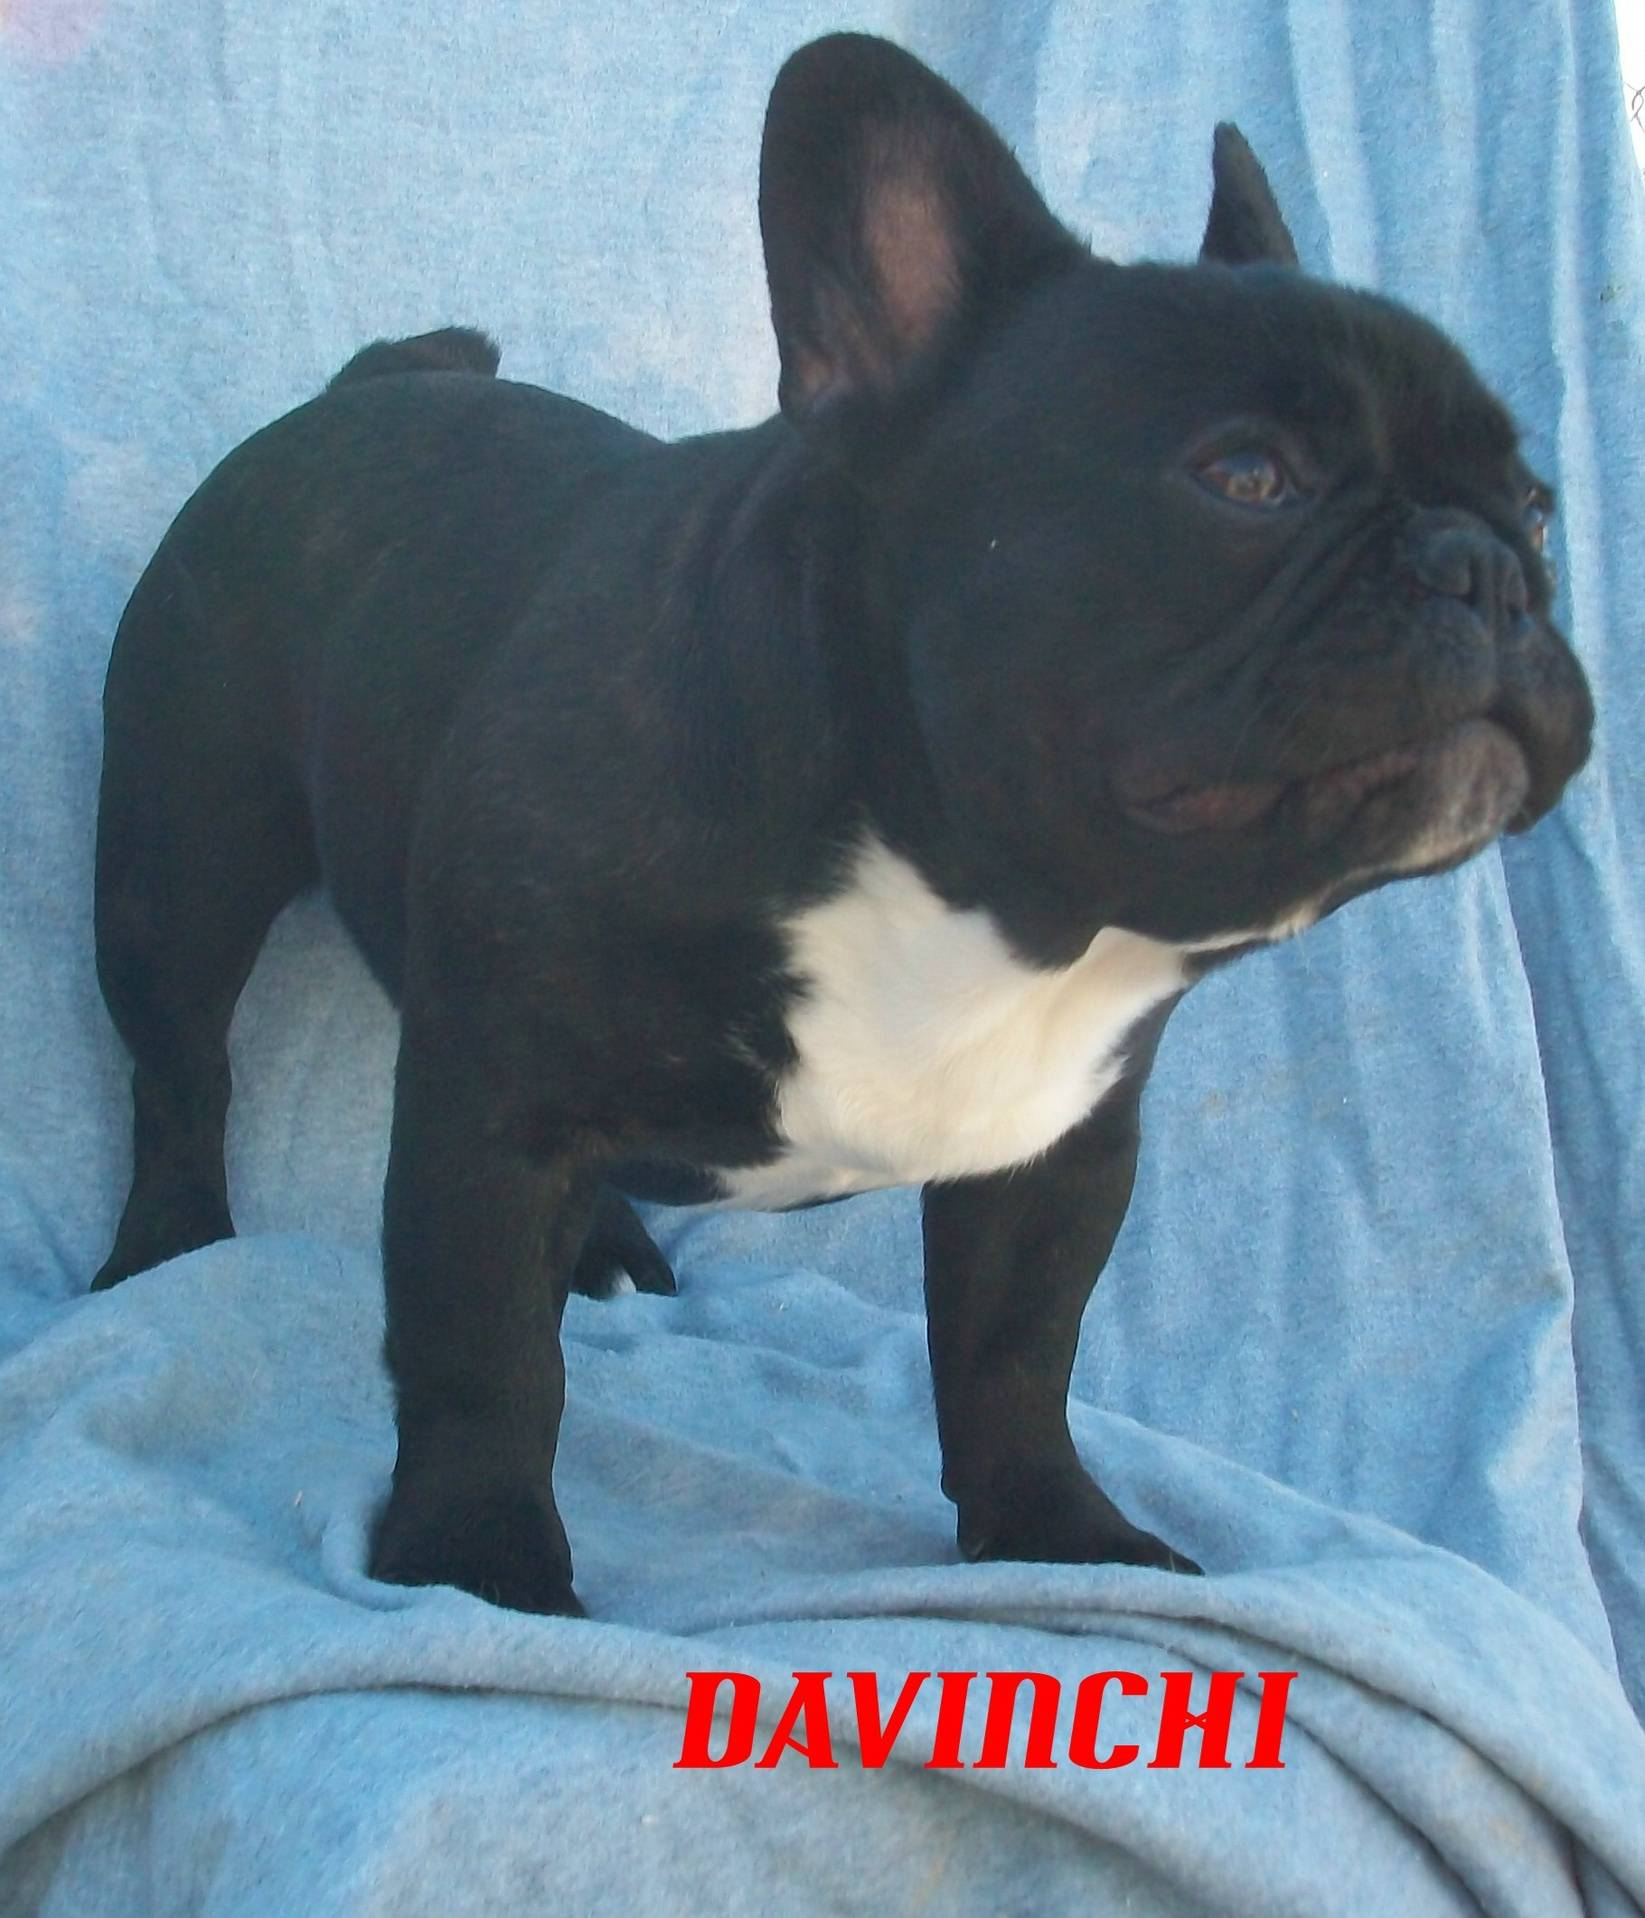 JR CH Blu-Choc Butterball Davinchi Not Breeding SORRY DUE TO CONGENITAL  HEART DEFECTS WE ARE CHOOSING NOT TO USE THIS MALE AS A STUD